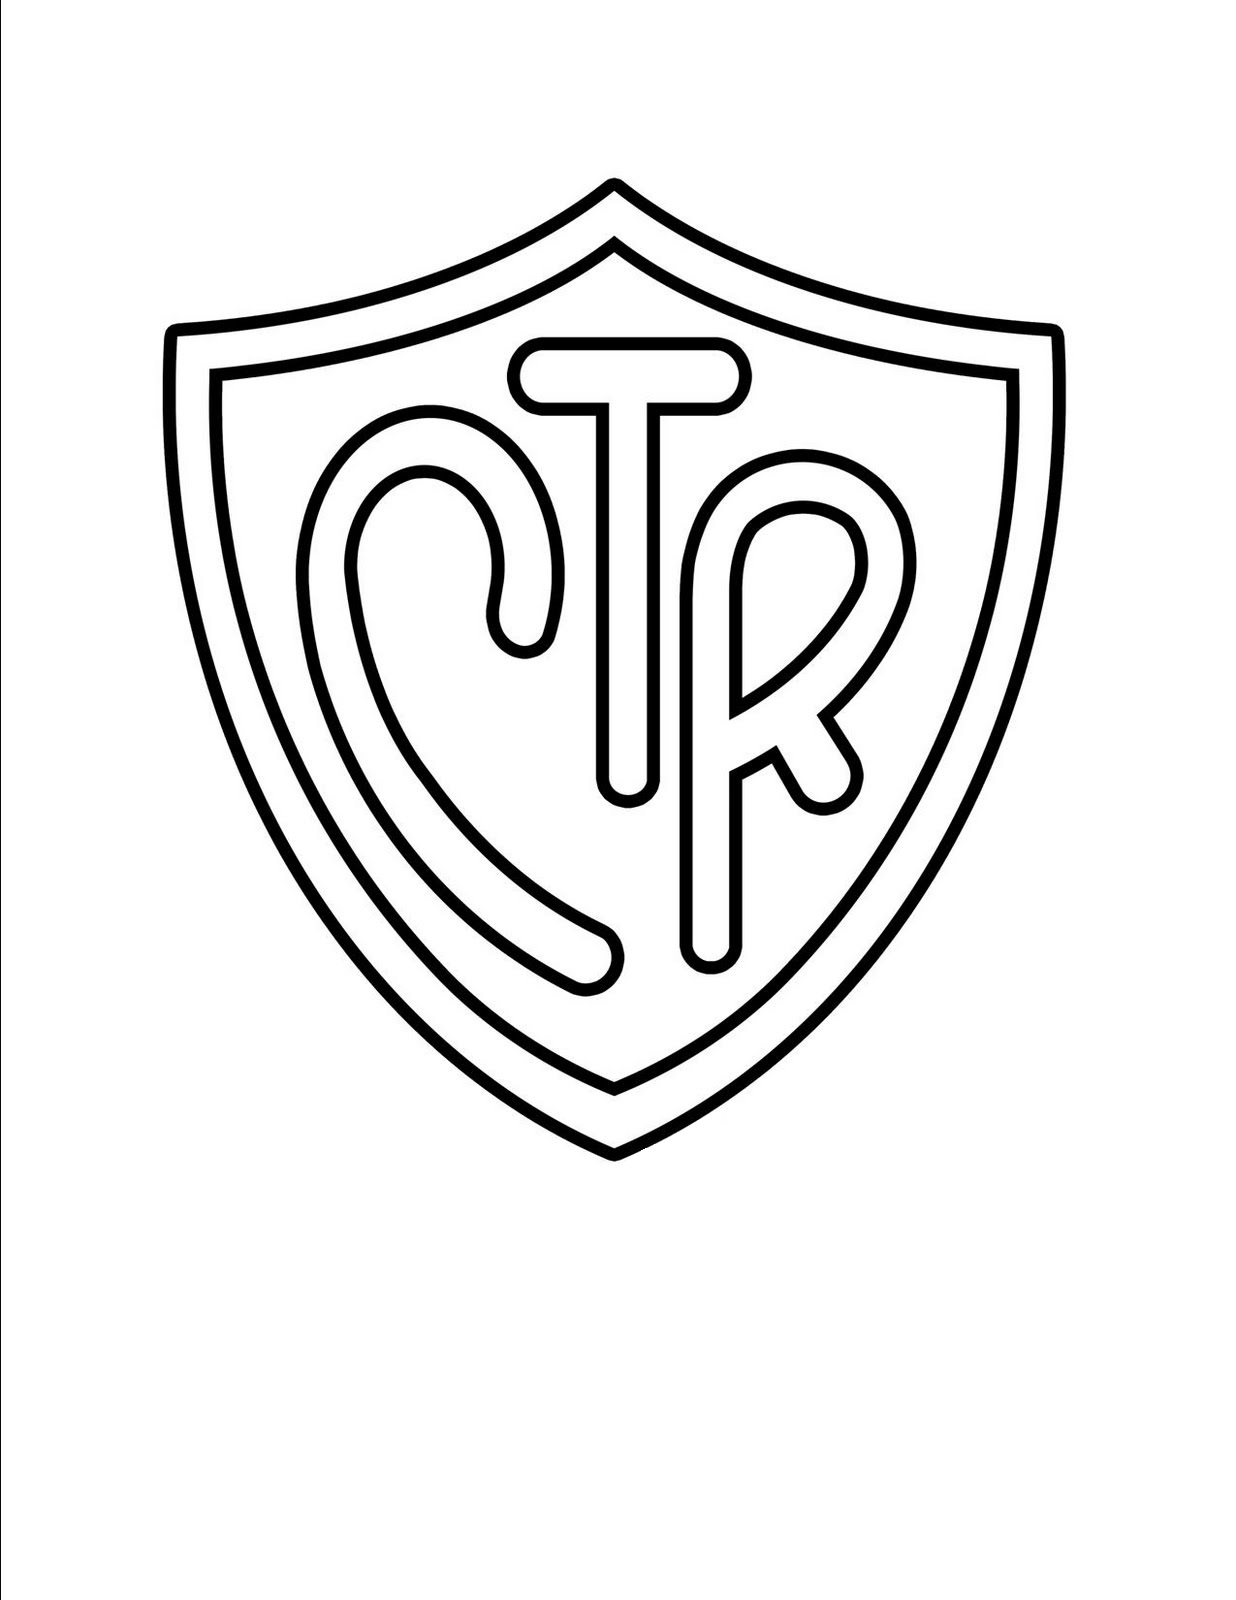 ctr coloring page 4